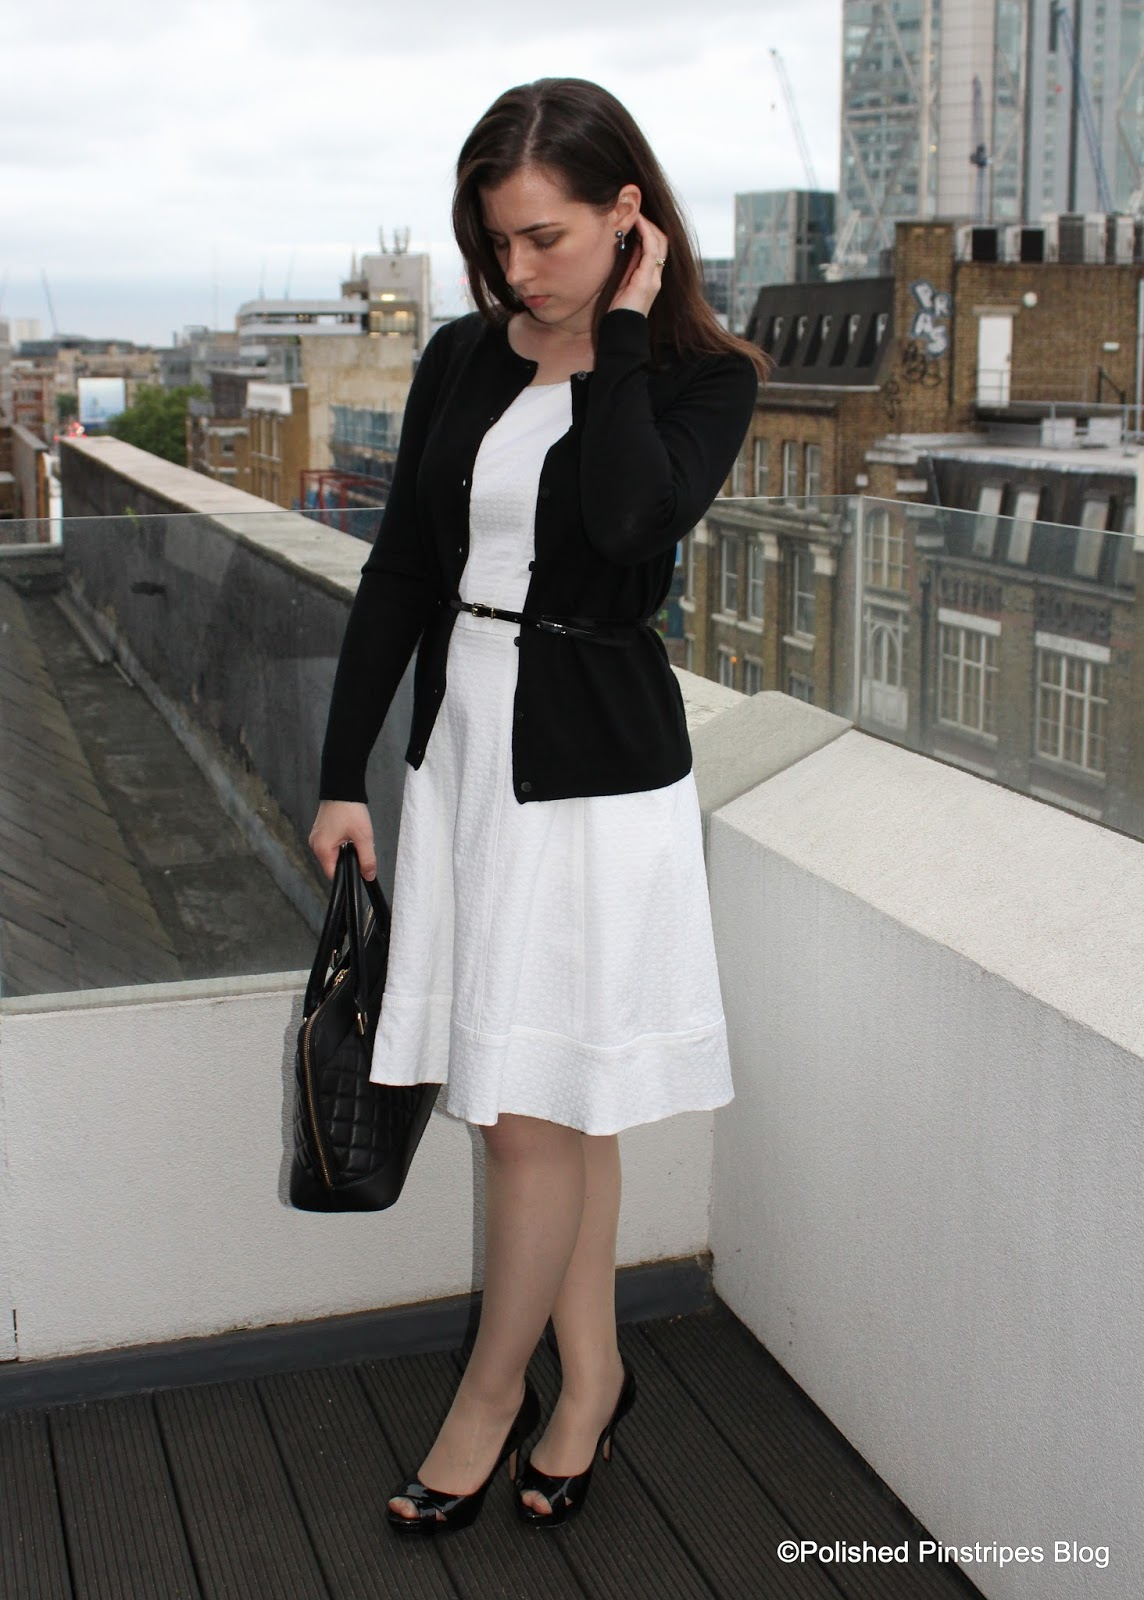 Black dress cardigan - What To Wear To Work Black Cardigan And White Dress